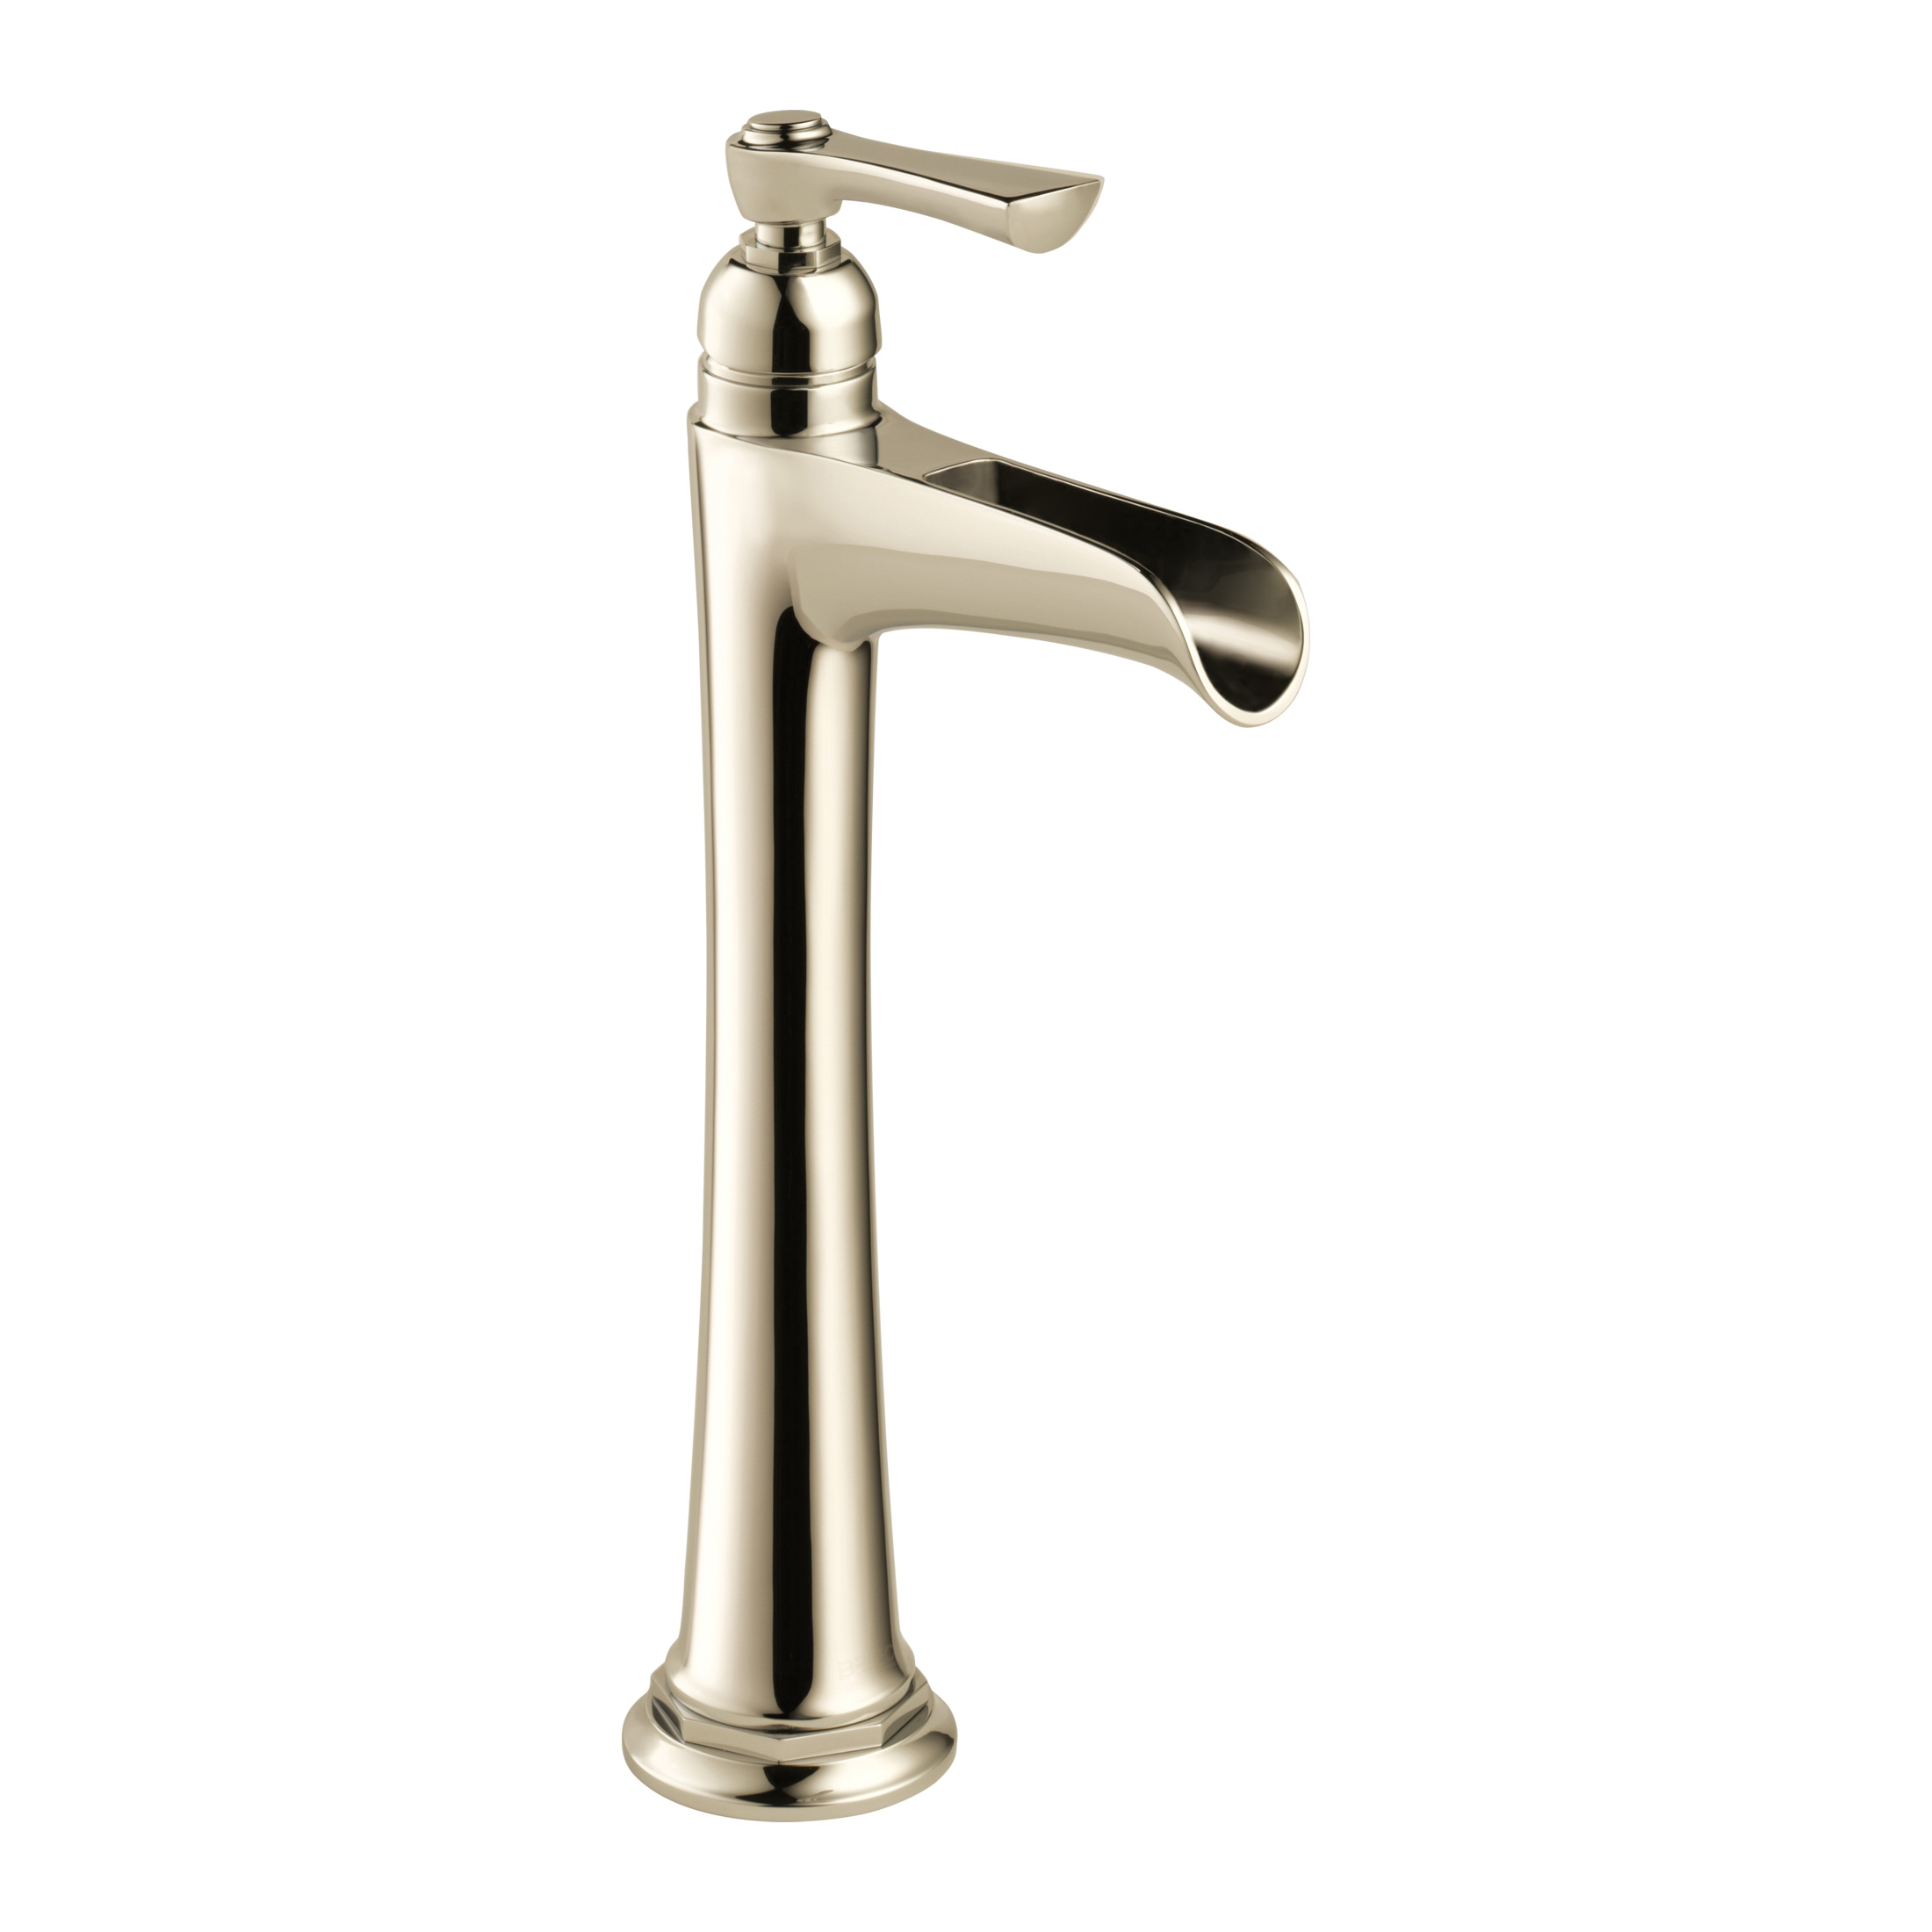 Brizo® 65461LF-PN Rook™ Vessel Lavatory Faucet Without Drain, 1.5 gpm, 10-1/4 in H Spout, 1 Handle, Polished Nickel, Import, Commercial